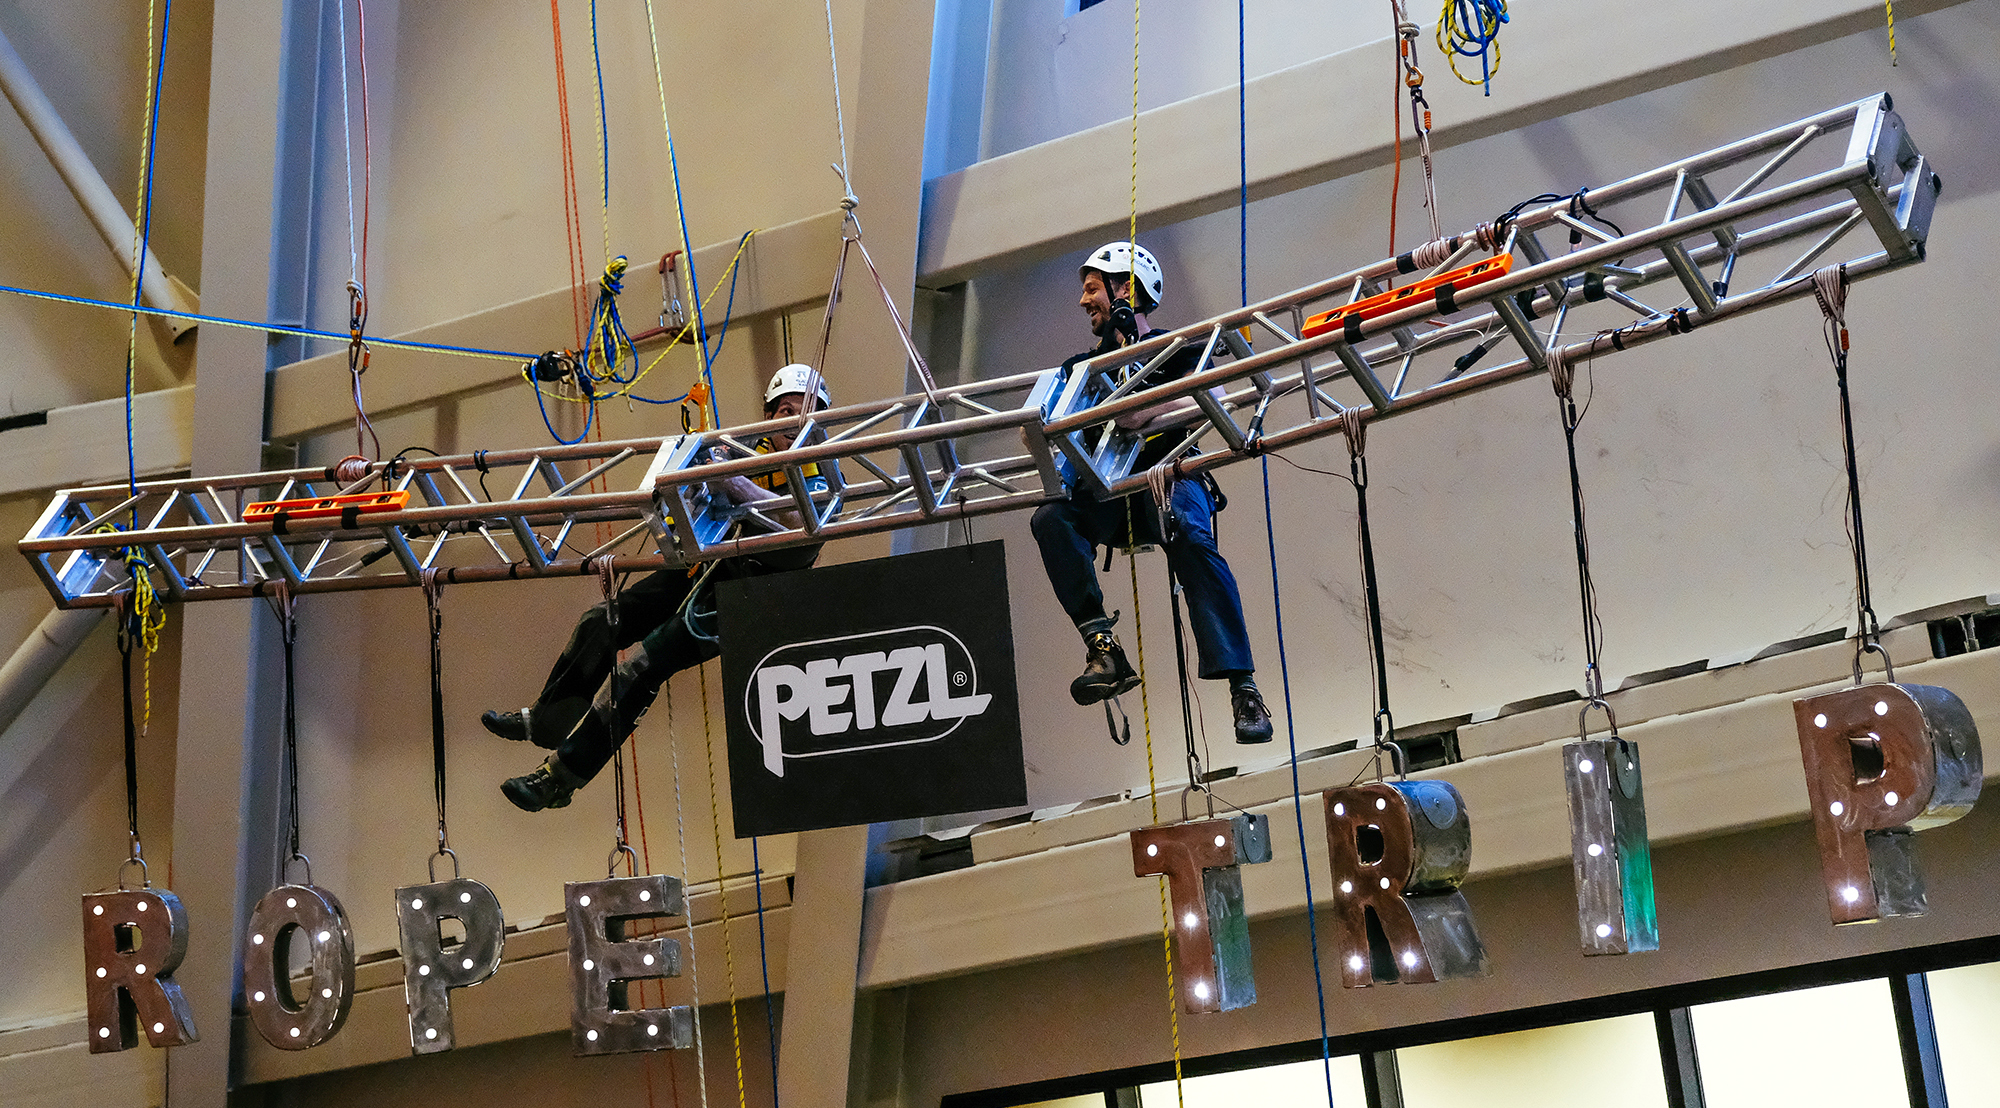 Behind The Scenes at the 2020 Petzl RopeTrip US & Canada Series